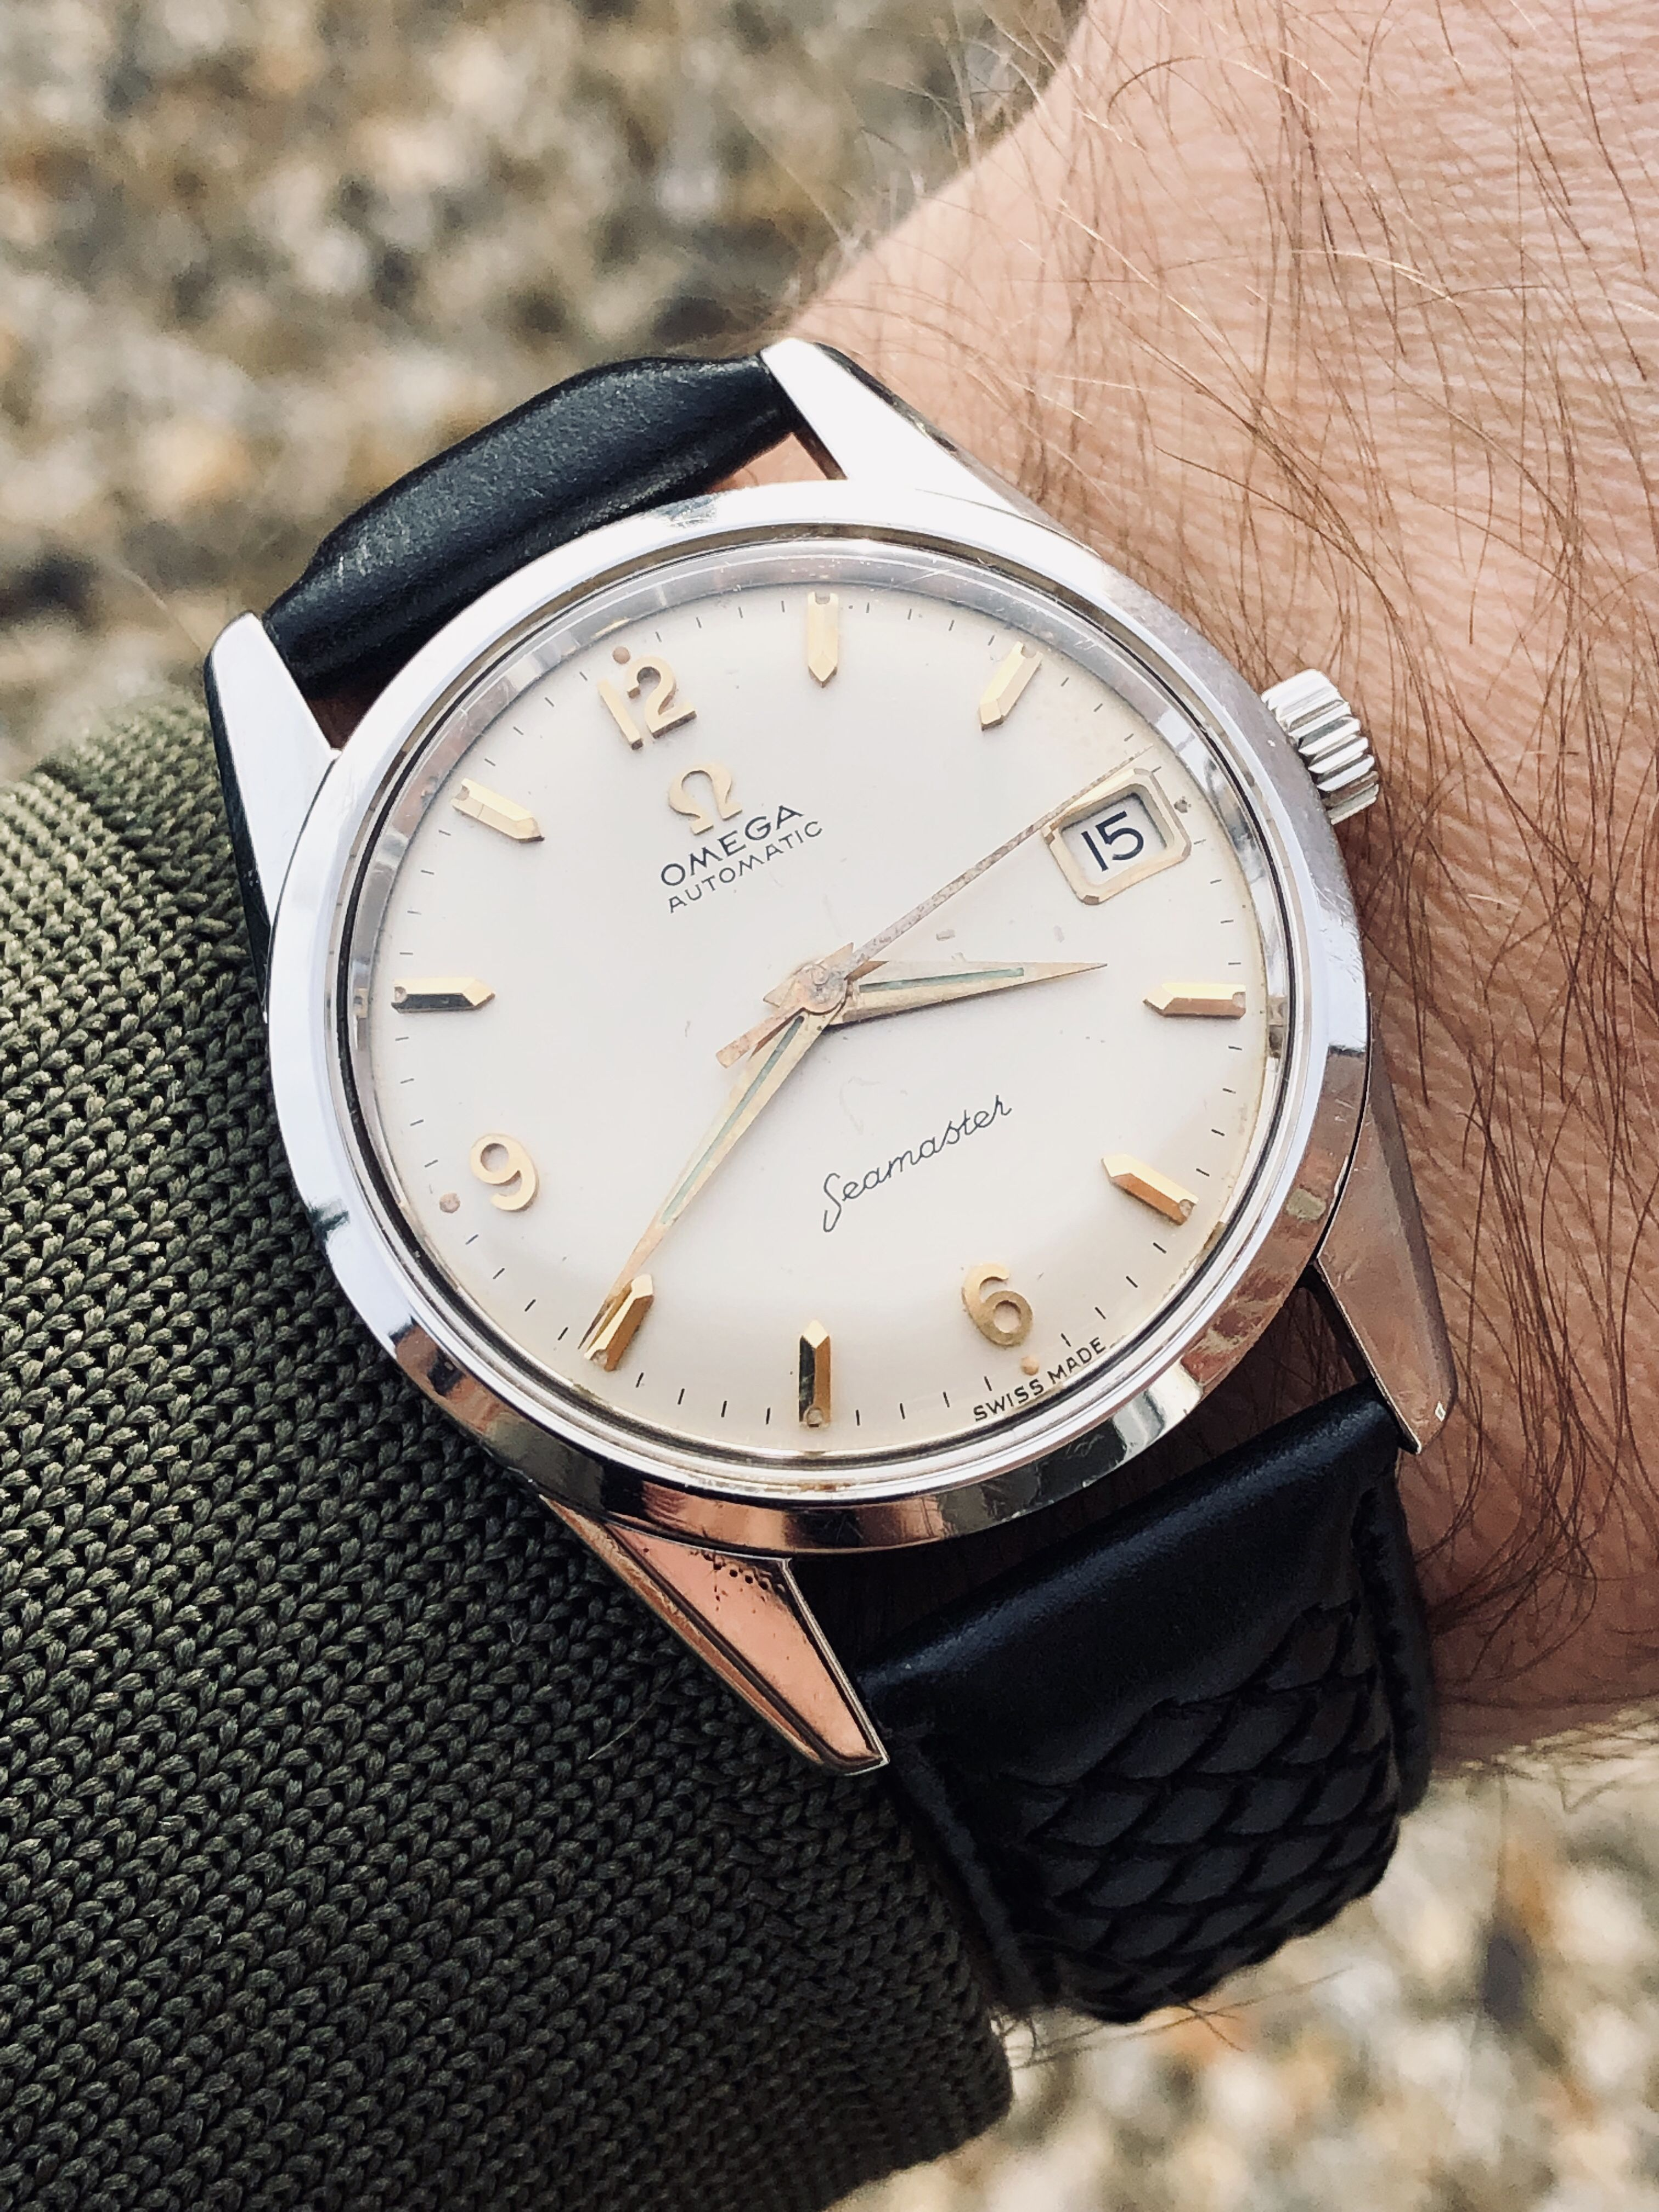 Omega Seamaster Stainless Steel Men S Automatic Mechanical Watch Vintage Watches Watches For Men Omega Watch Vintage